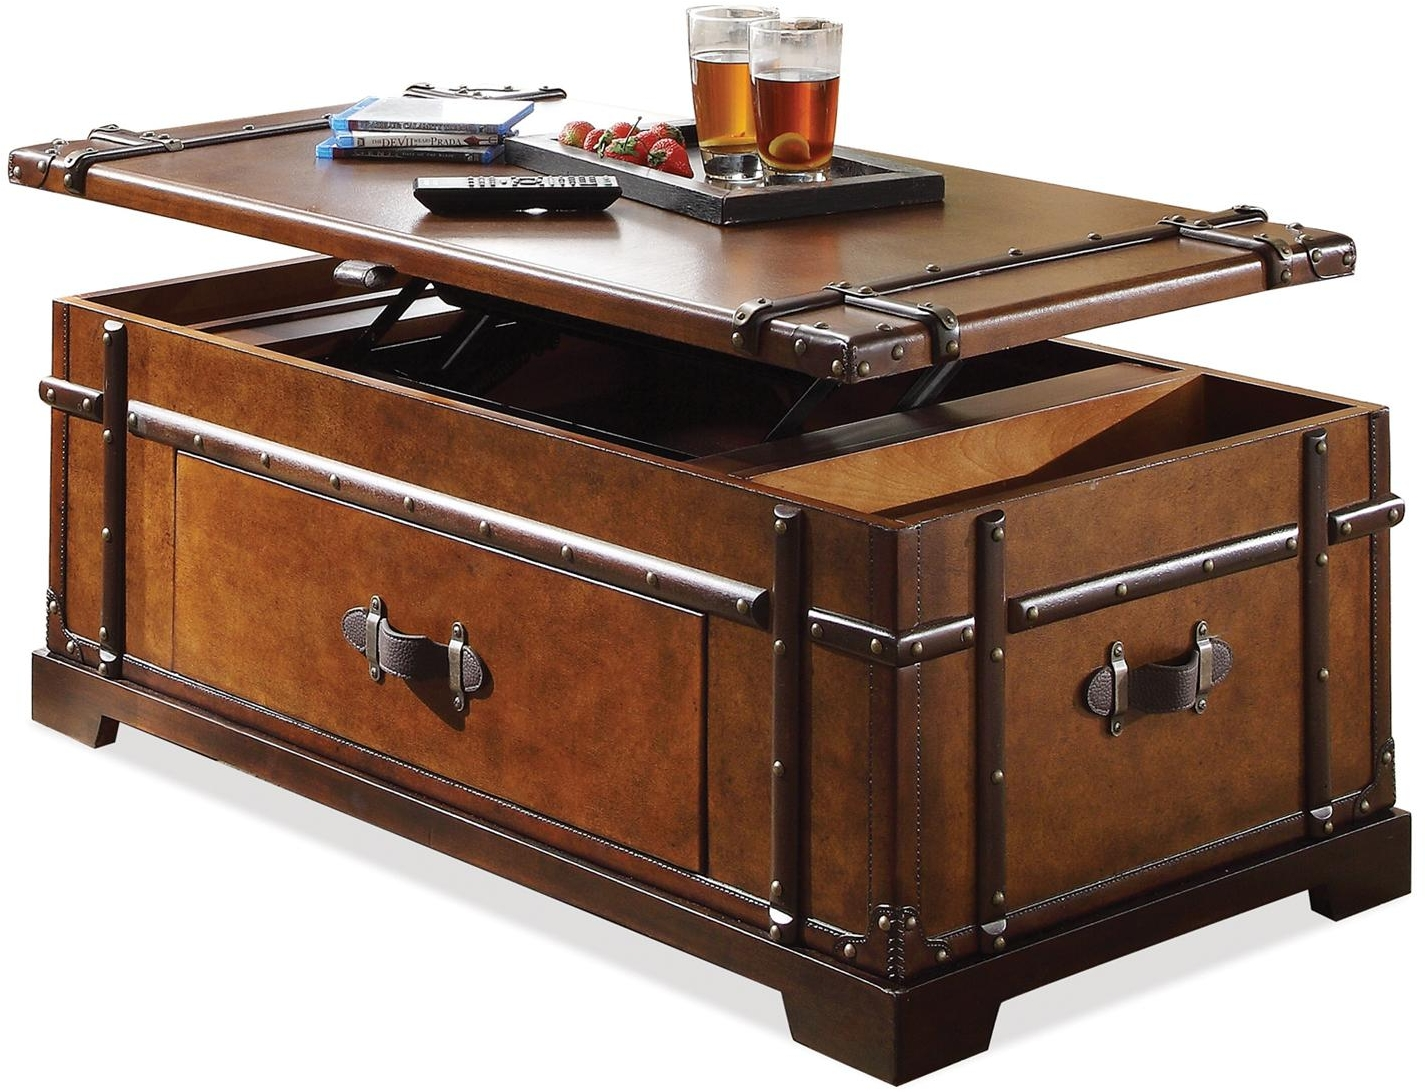 Latitudes Steamer Trunk Lift Top Coffee Table By Riverside Nis101373070 Horton S Furniture Mattresses